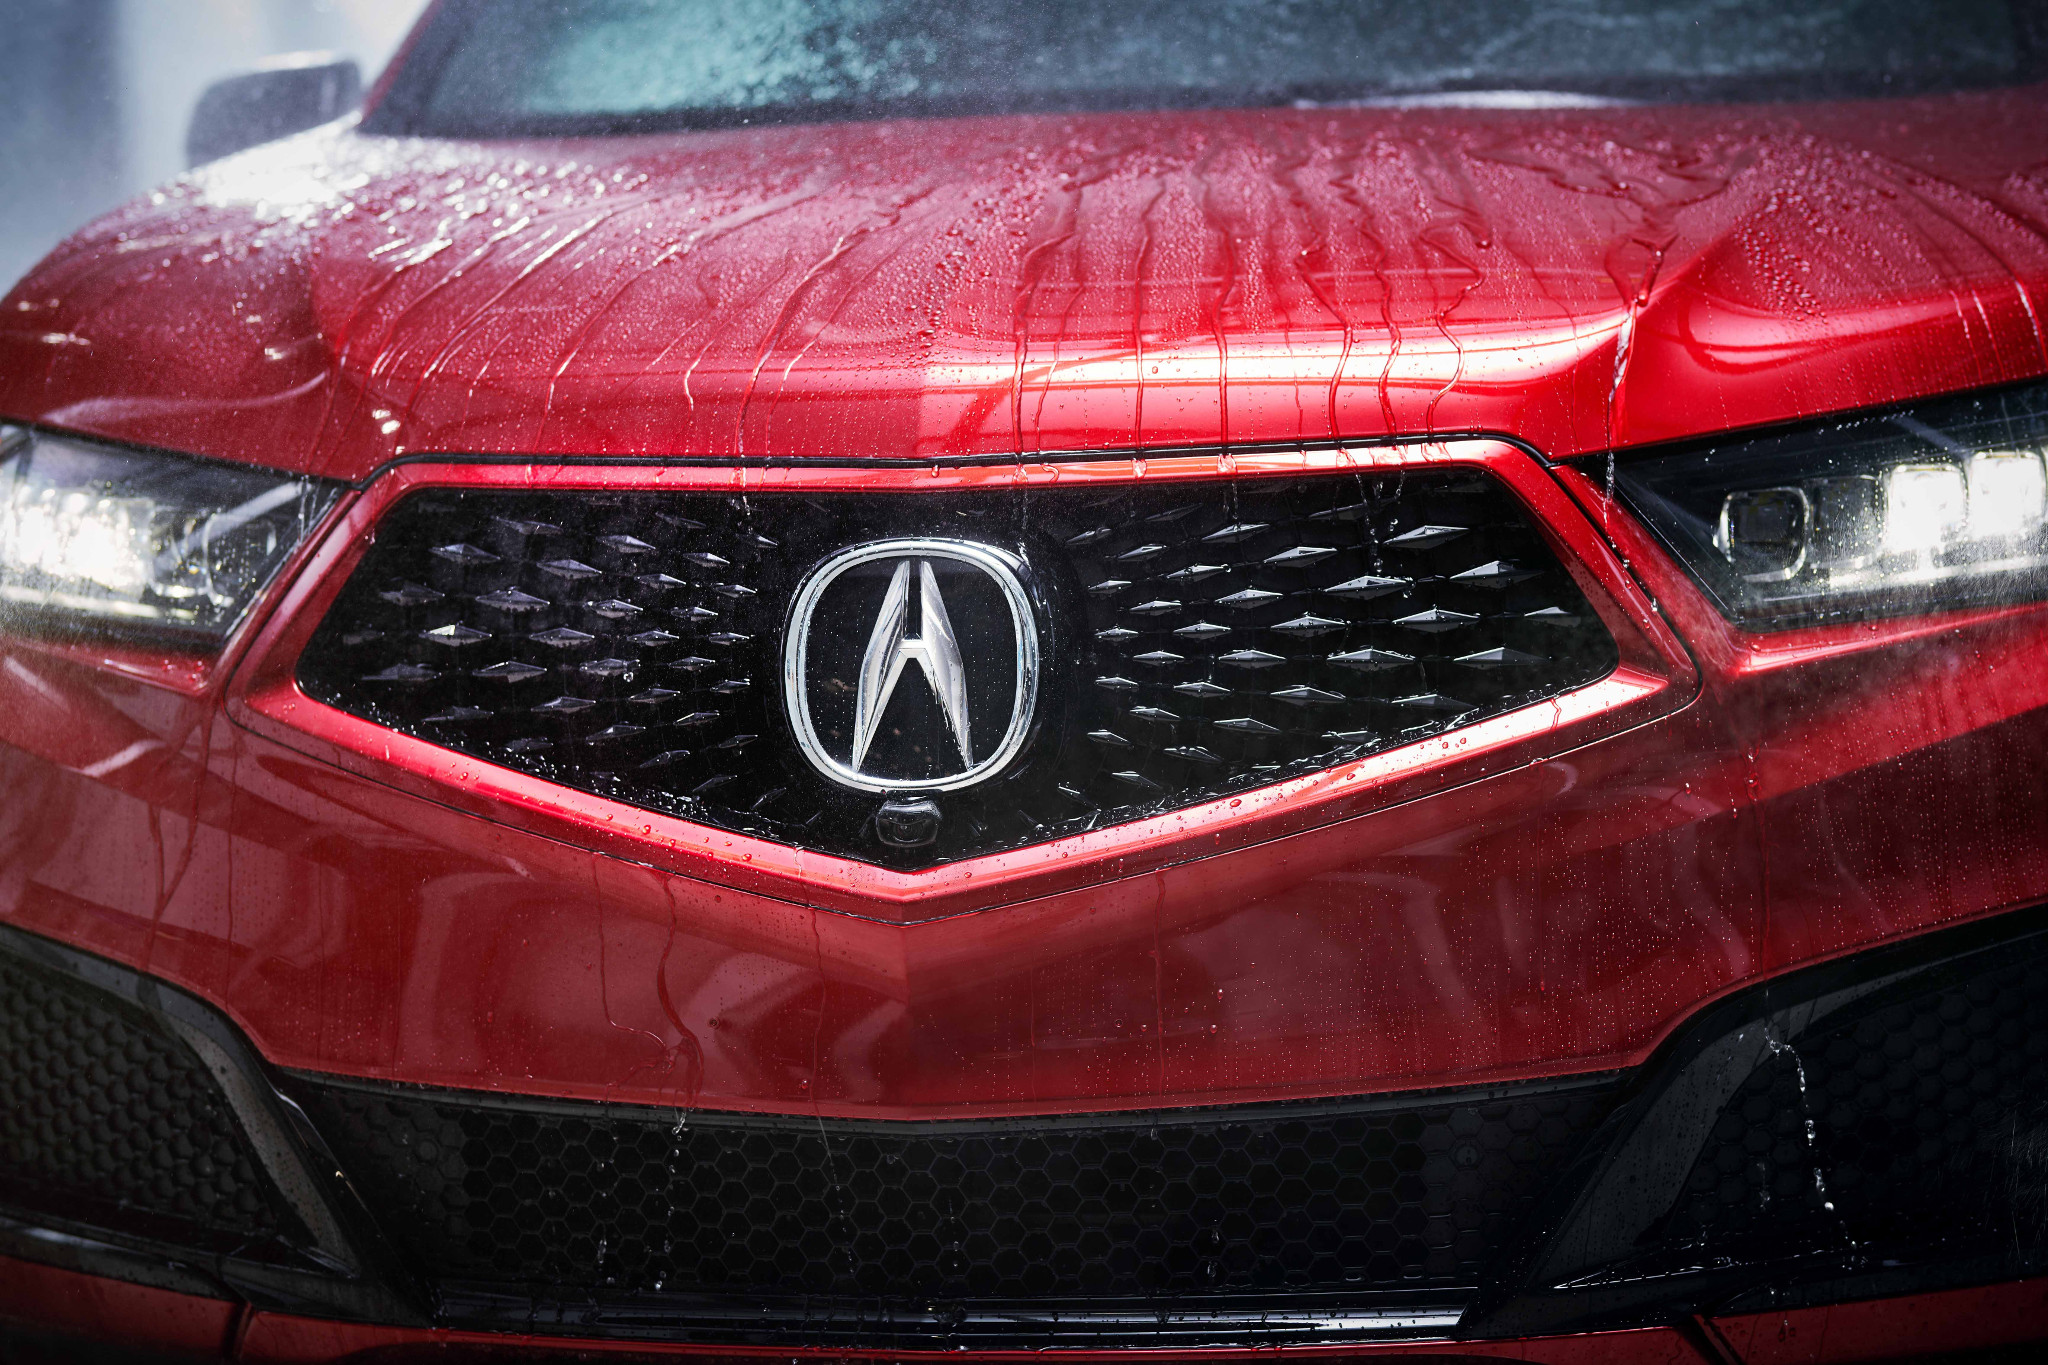 acura-mdx-pmc-edition-2020-07-exterior--front--grille--red.jpg